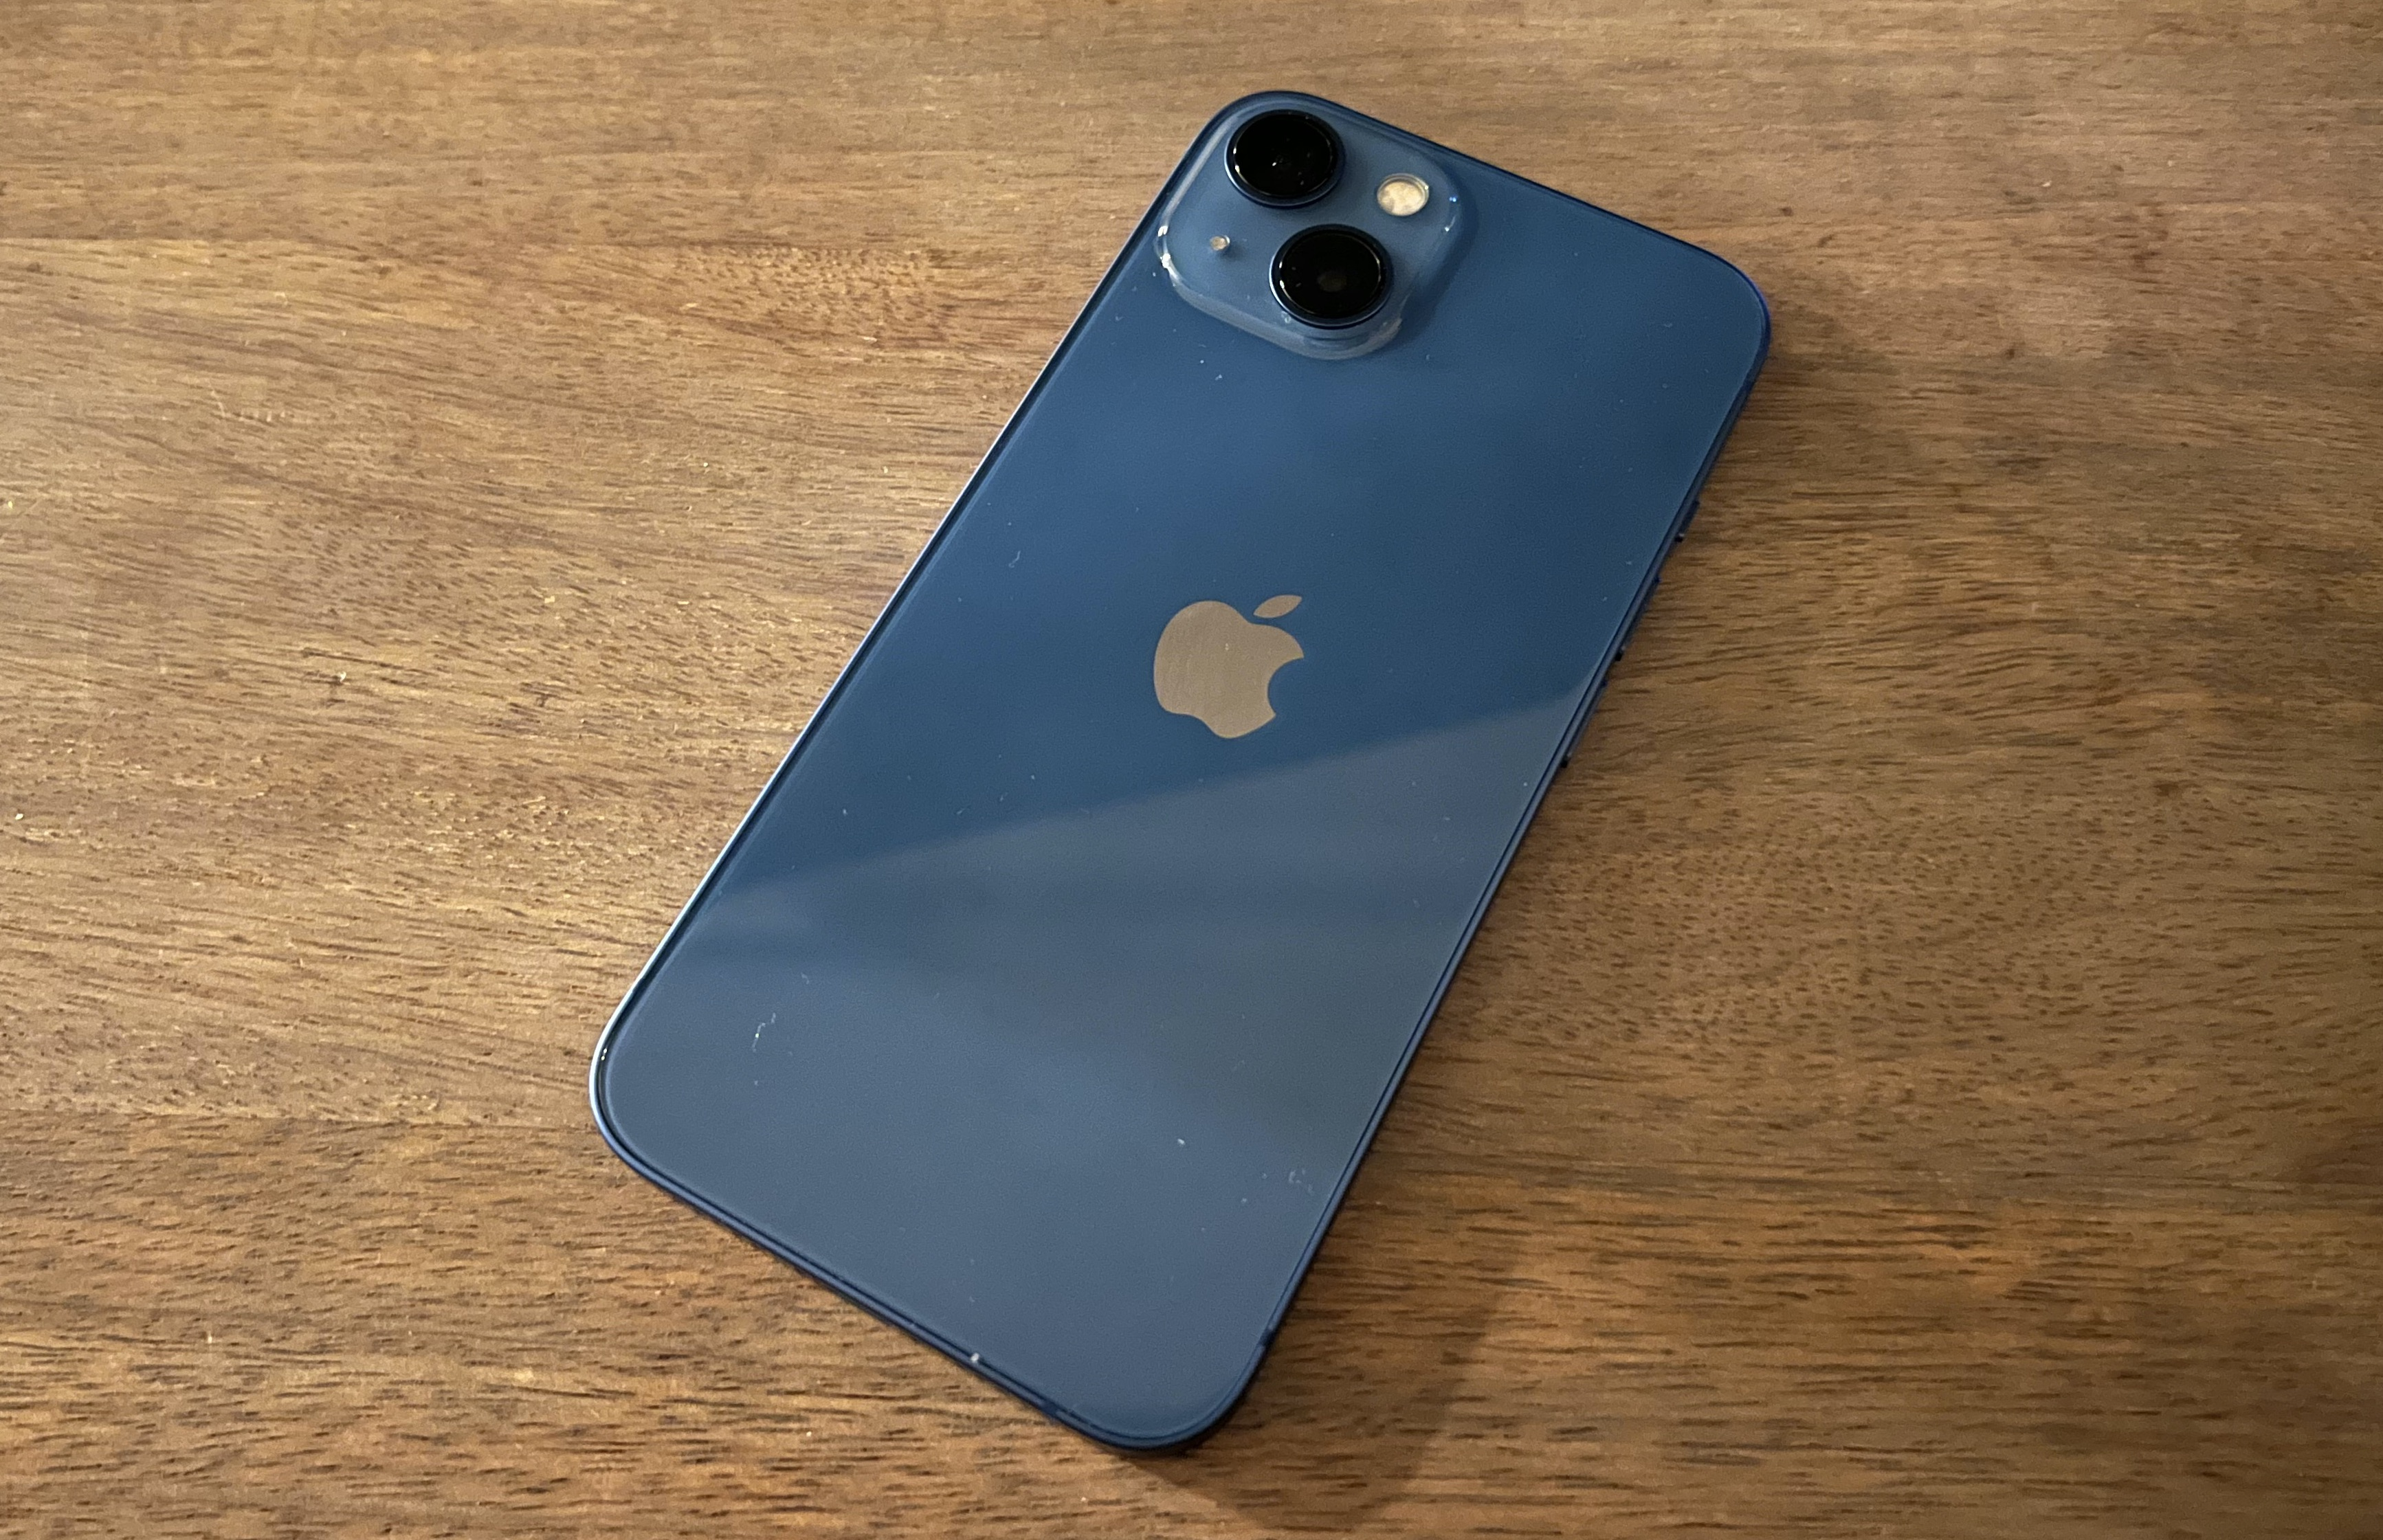 The back of the iPhone 13.